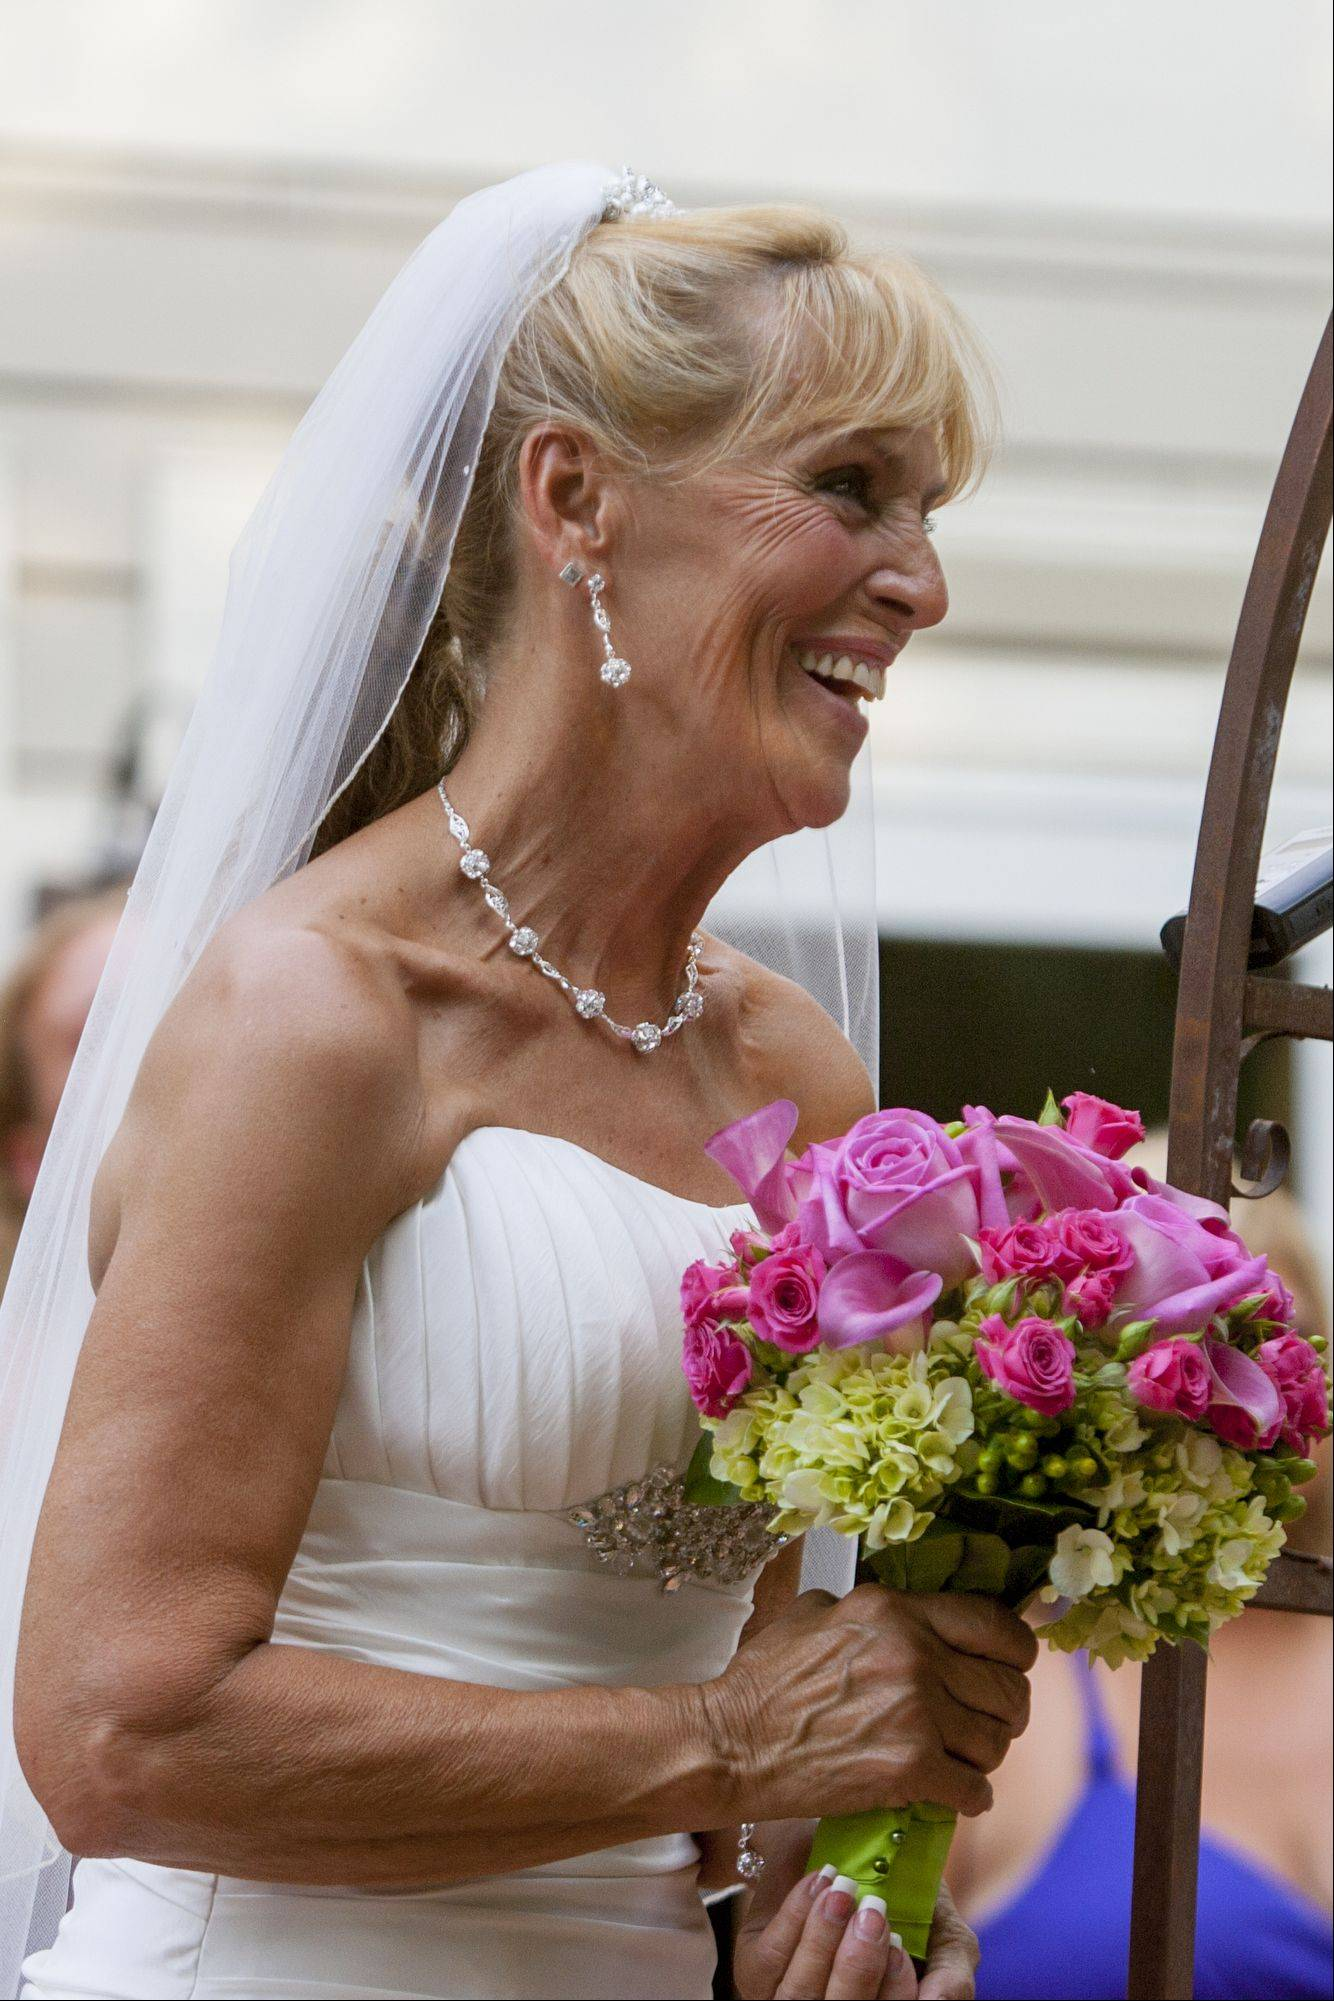 Libby Watkins laughs with excitement before getting married to Mike Conjura.